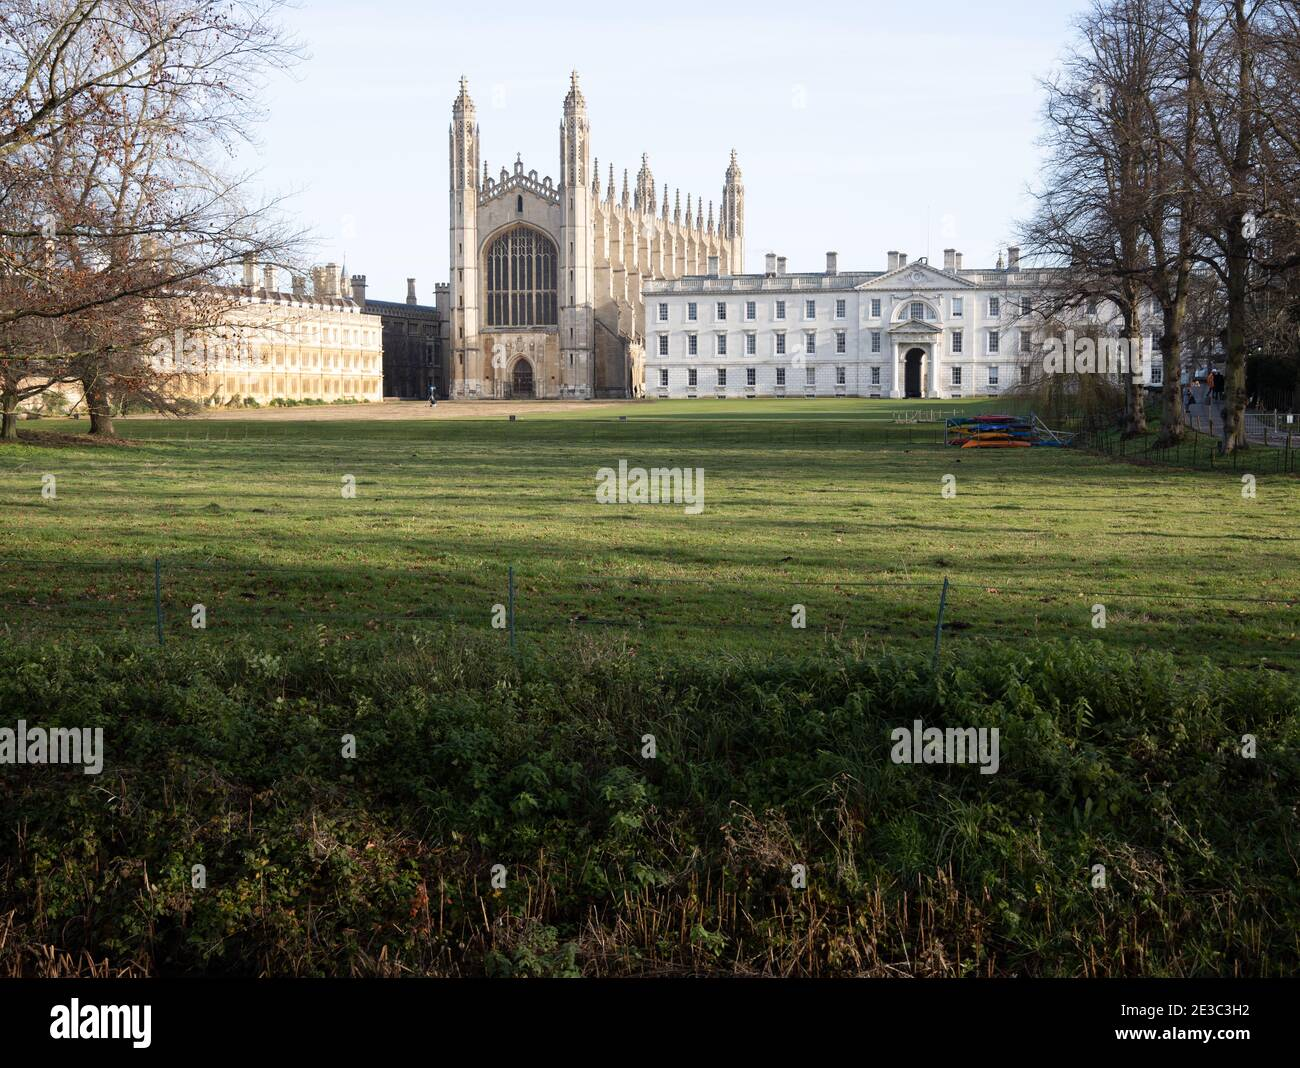 The Backs in Cambridge showing the ironic Kings College Chapel England Stock Photo